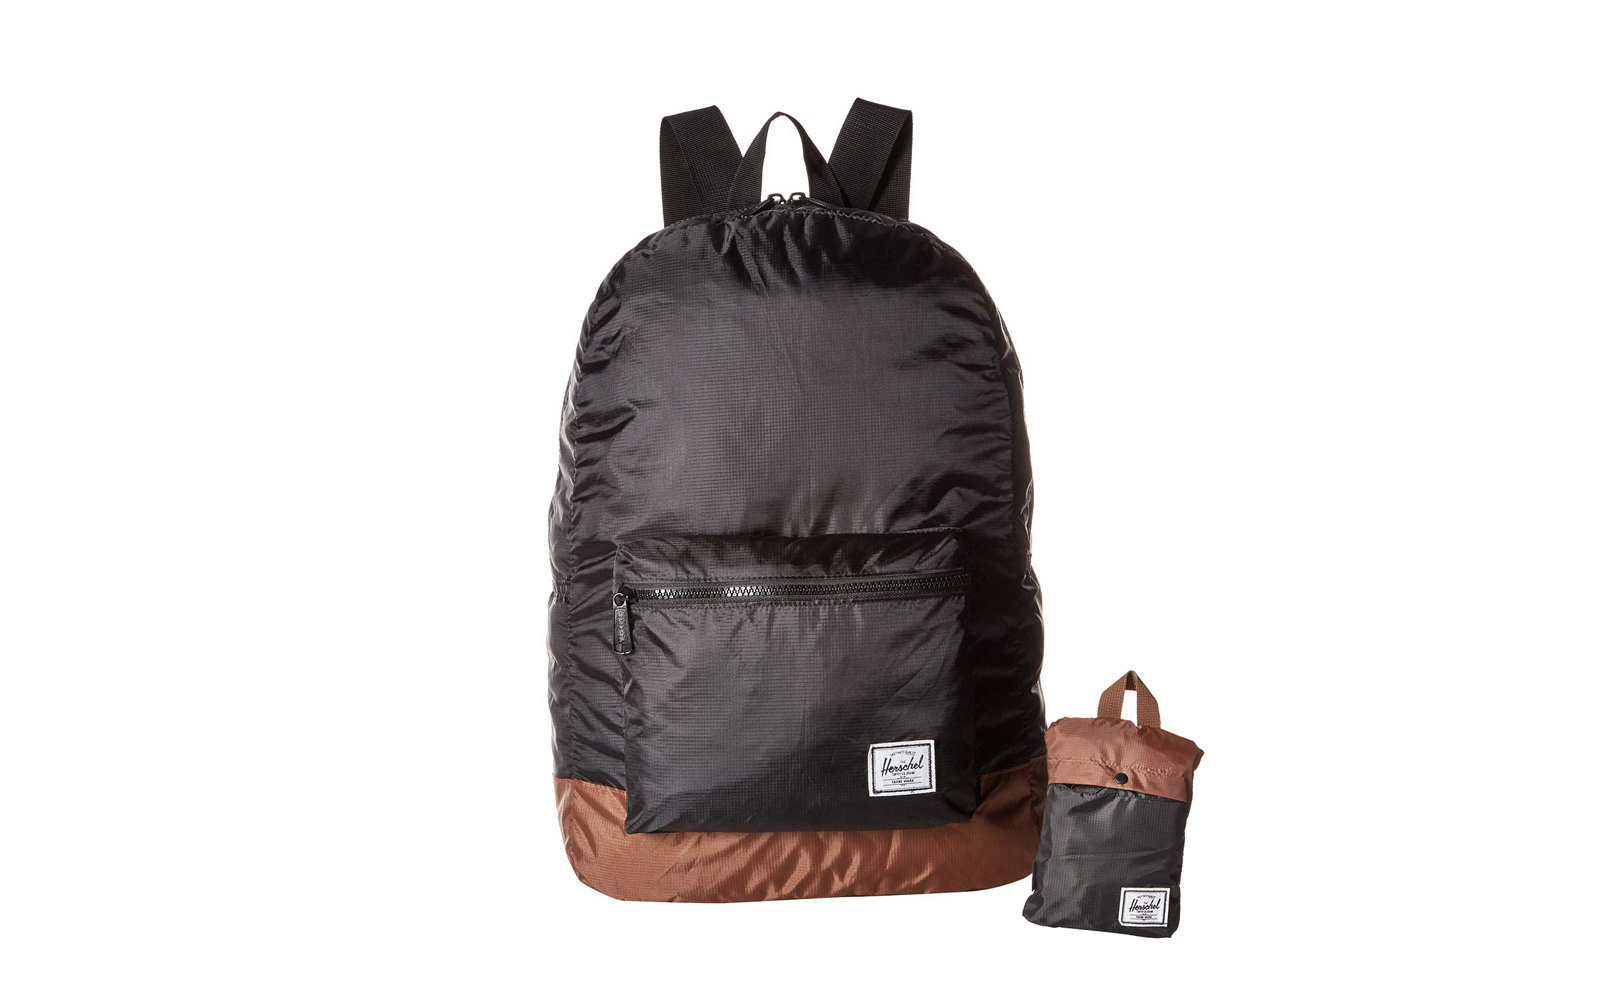 bc1cf748dc The 11 Best Packable Backpacks for Travelers